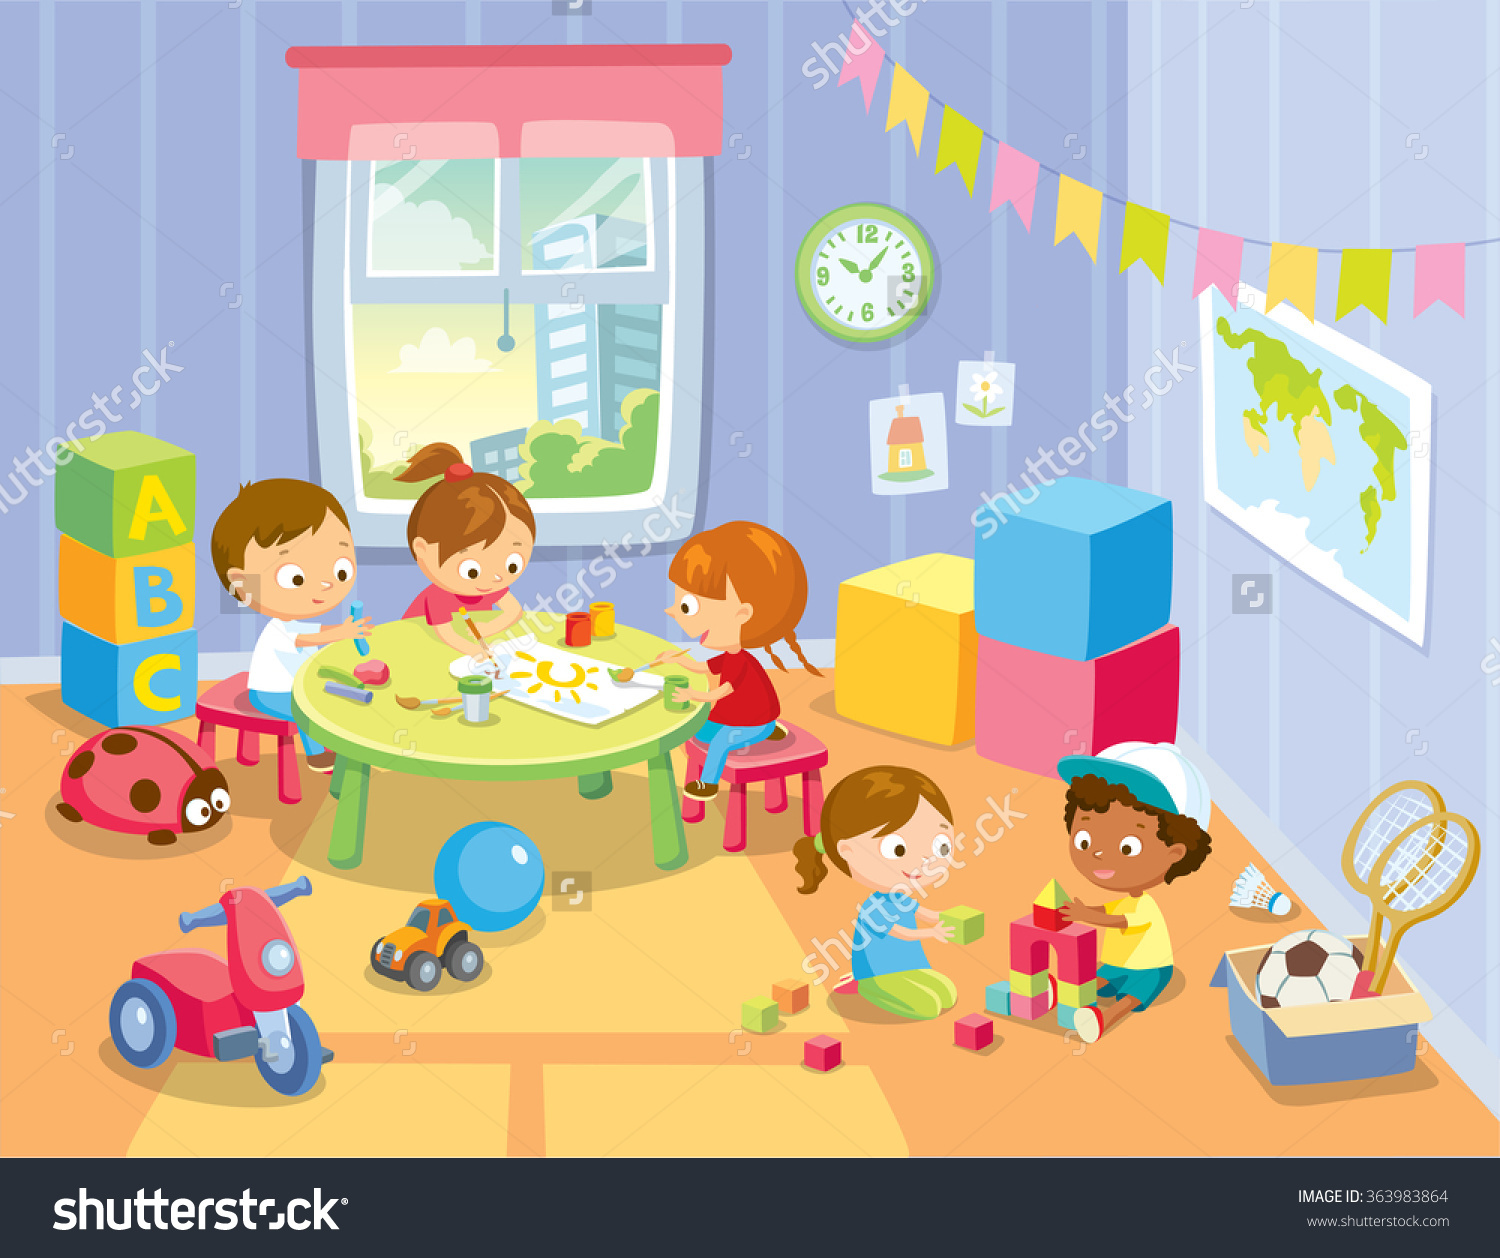 Toy room clipart.